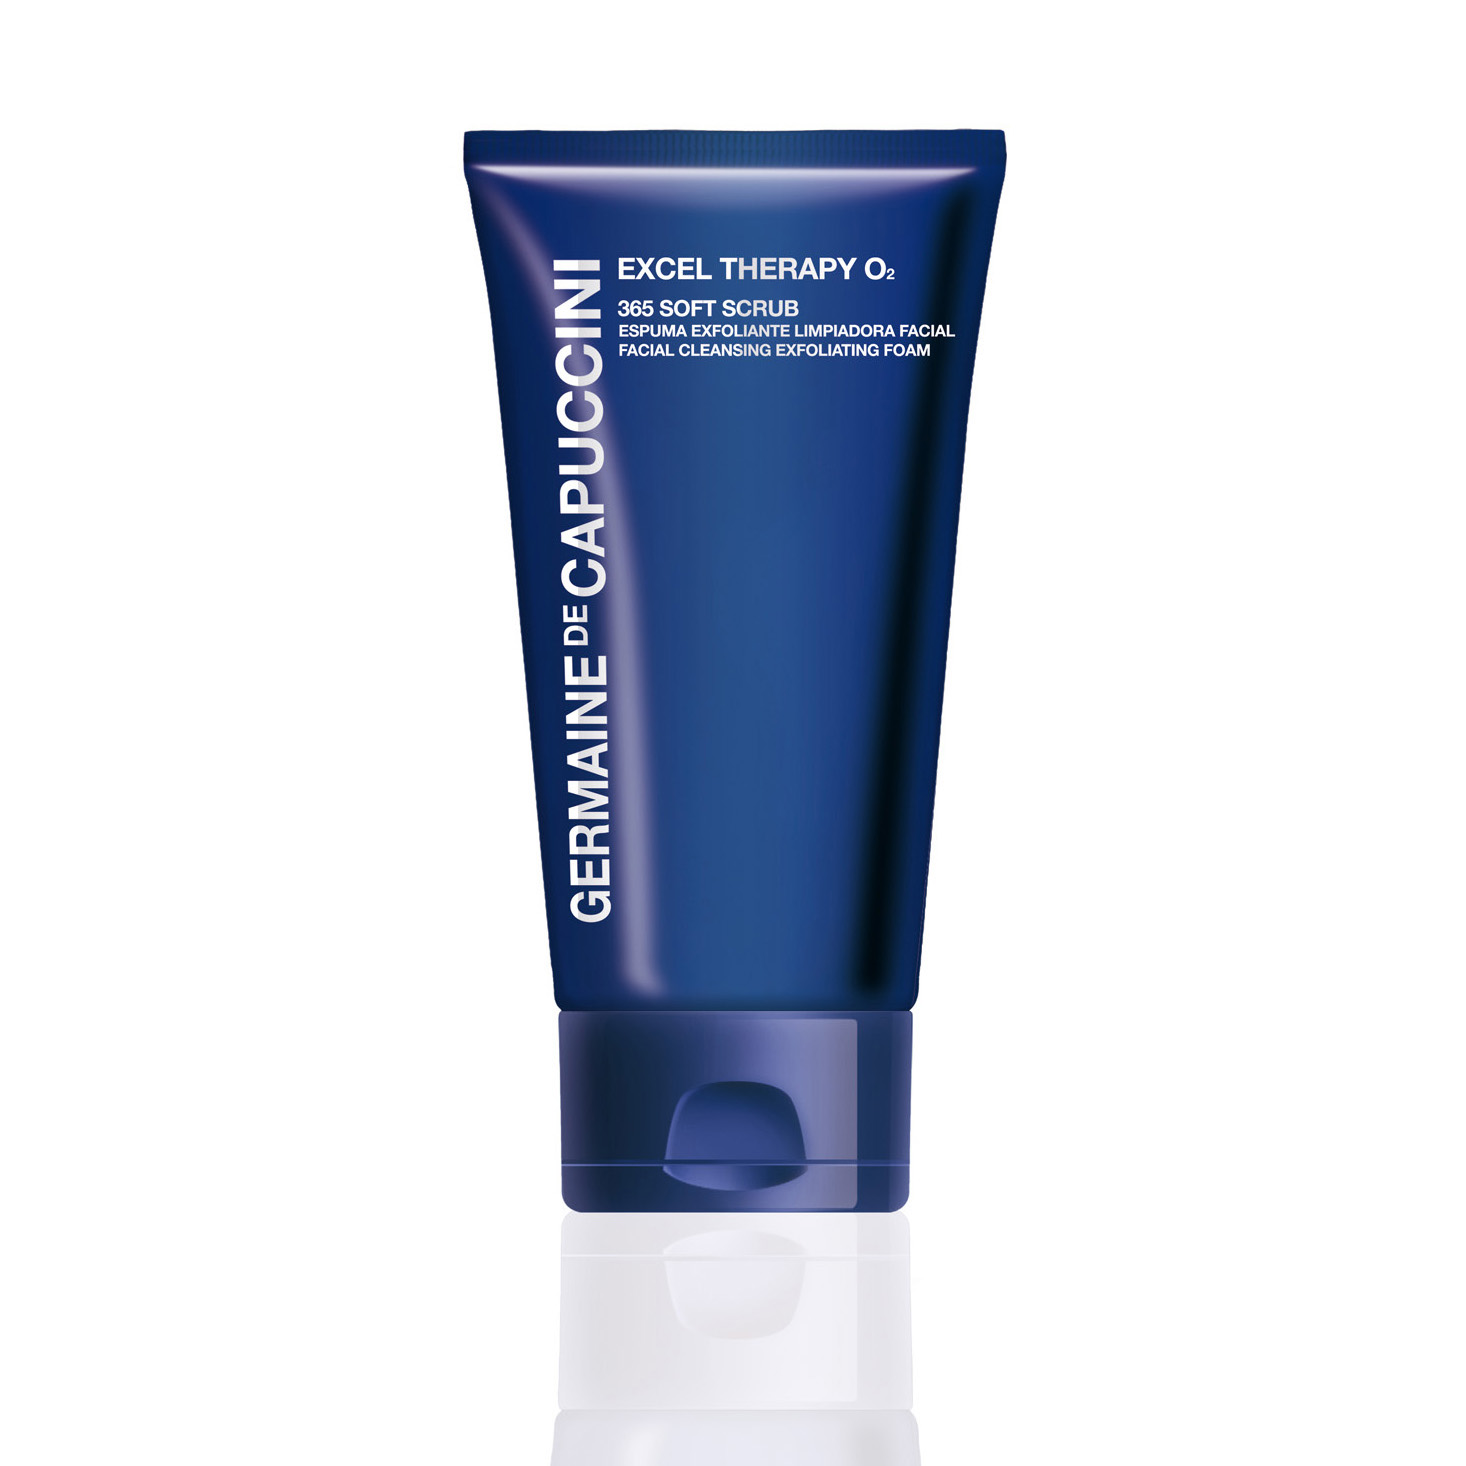 Germaine de Capuccini Scrub Excel Therapie 02 150ml